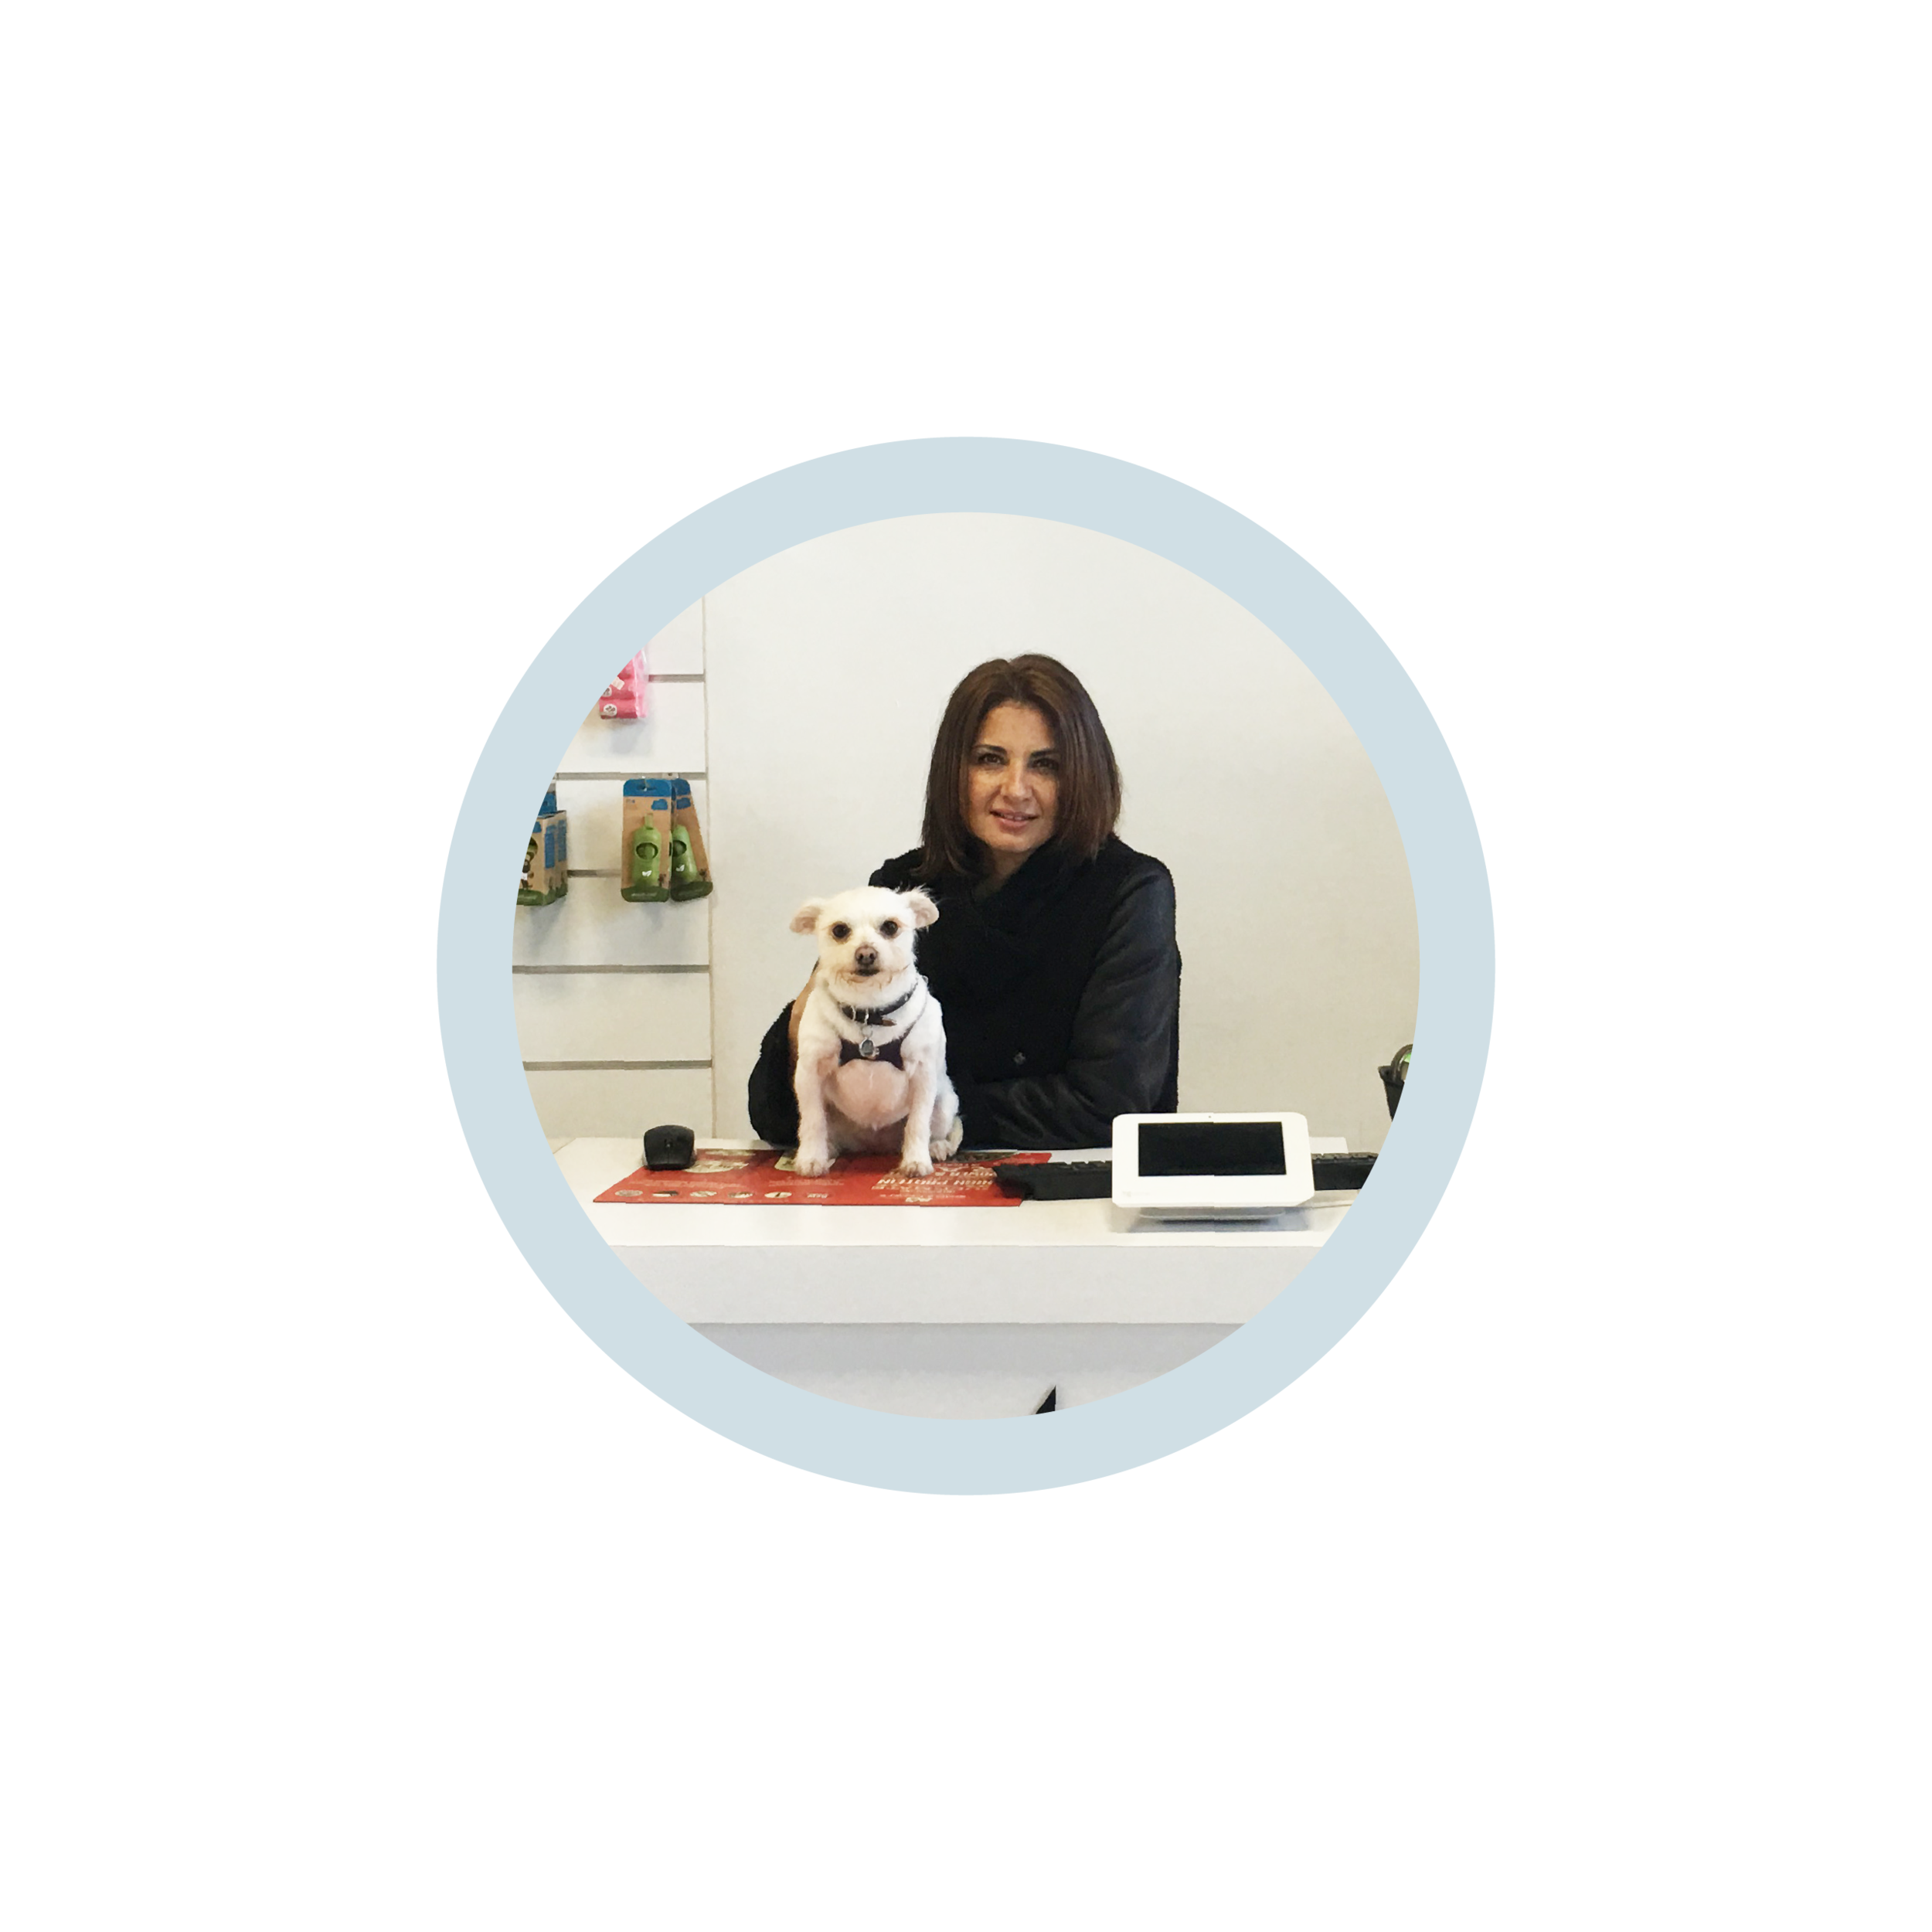 Dina Marquez - Dina has been passionate about dogs for as long as she can remember. She has been active with several rescue organizations around San Diego for years, and as a result opened Barkhouse in 2016. Opening the doors allowed her to not only be surrounded by her fur babies, but as well as yours. Because of this, Barkhouse is a pampering, safe, stress-free, cage-free environment for your fur-baby. Stop by and say hi, she is always in the store waiting to meet new pups. Message her below today!